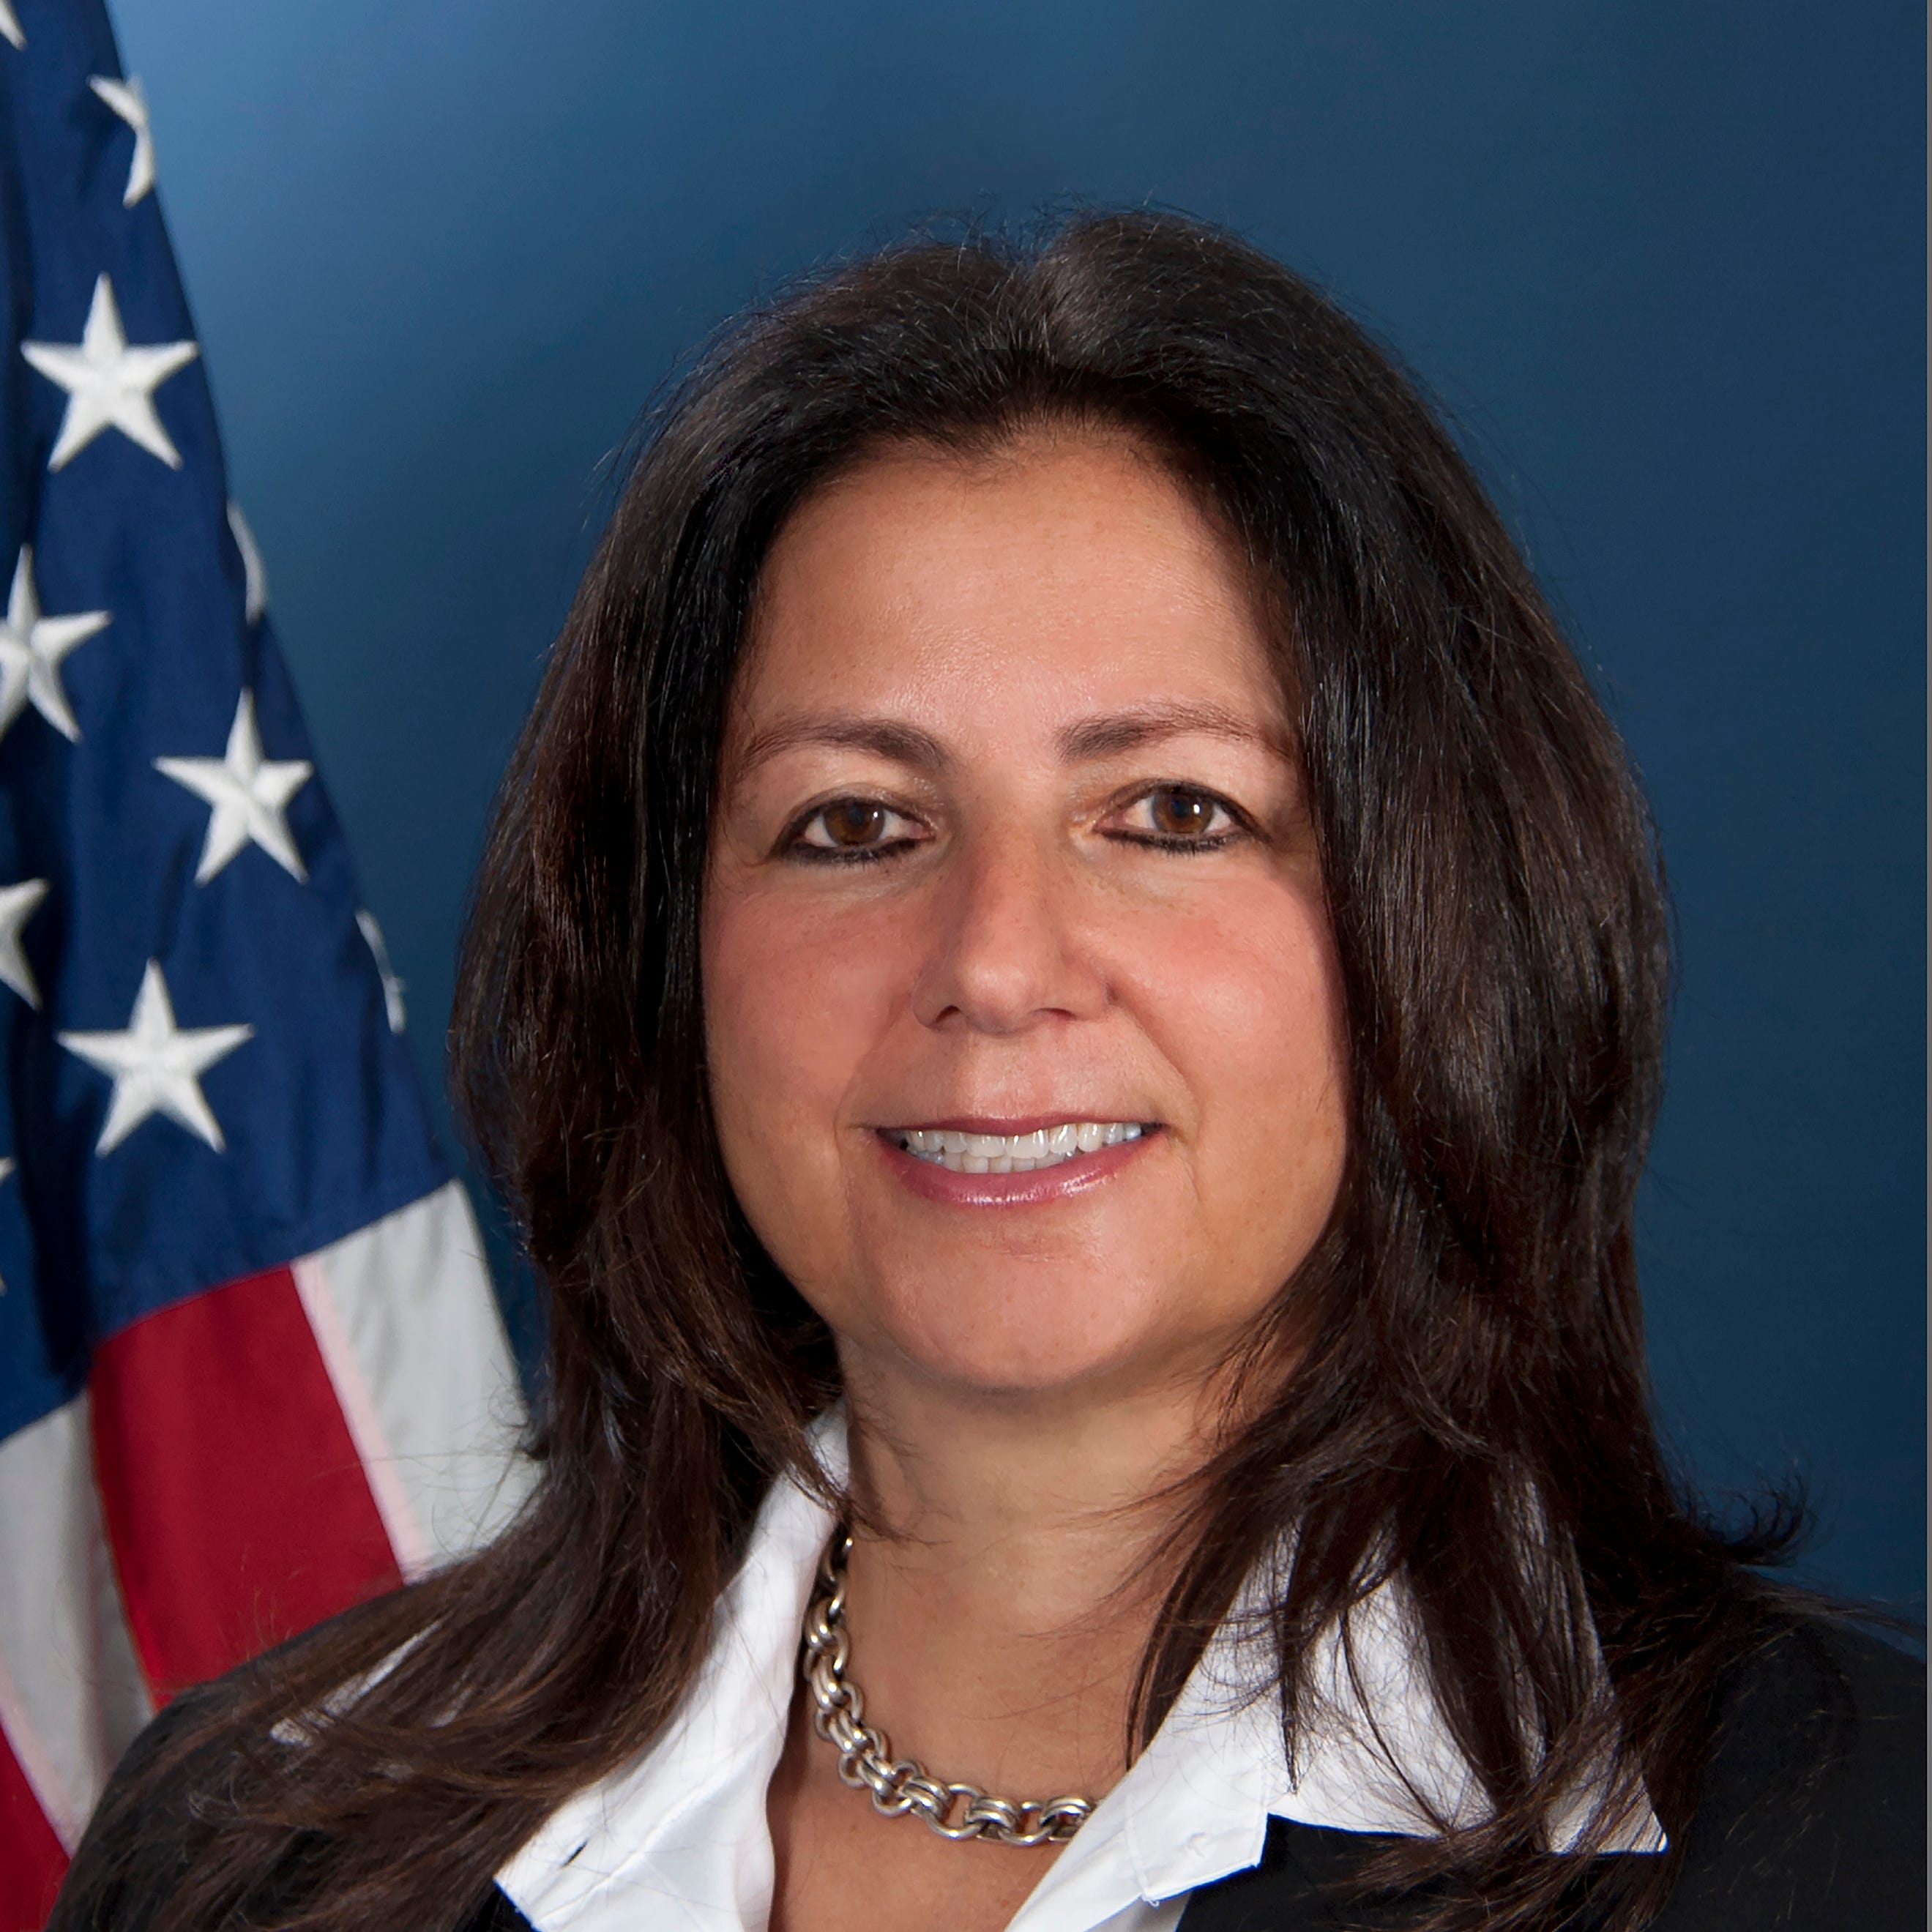 Former Cape Coral resident now leading the ATF. She's the first woman to head the agency